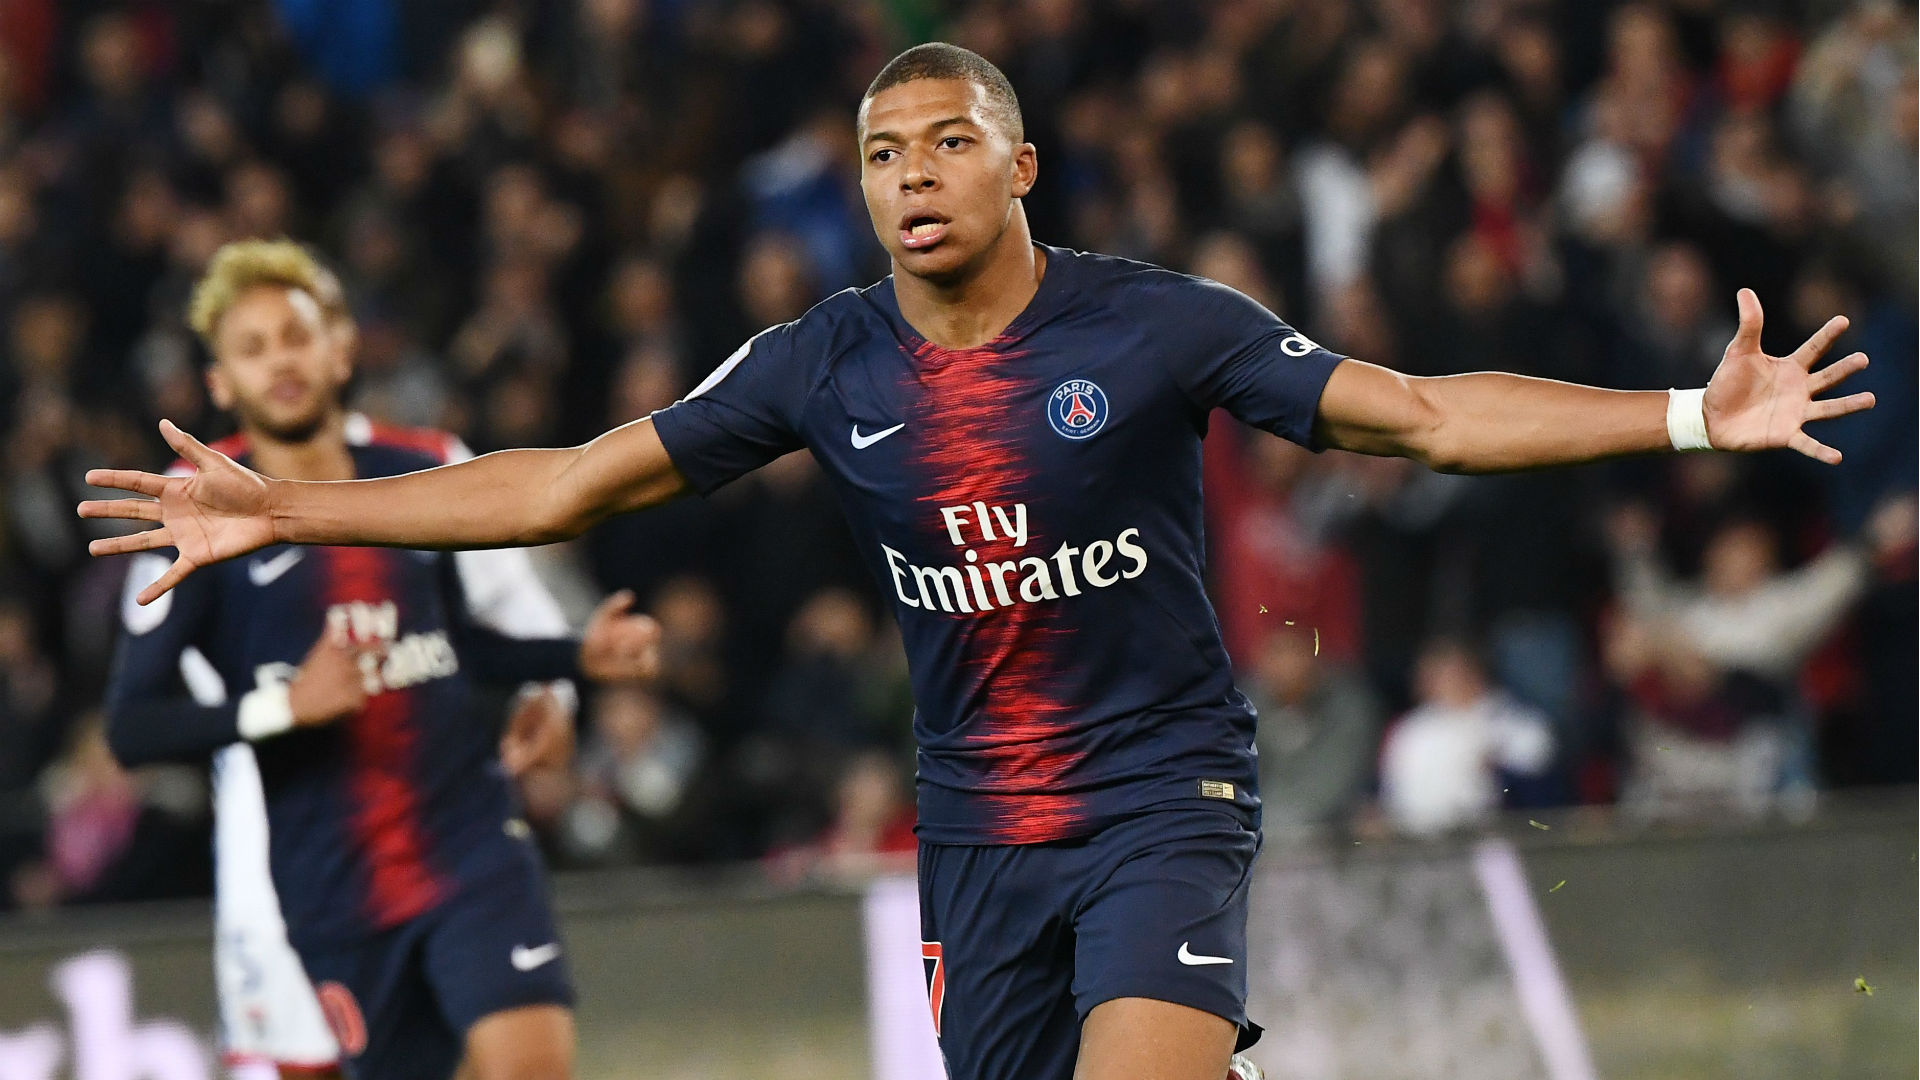 Paris Saint-Germain goalkeeper Gianluigi Buffon backed Kylian Mbappe to win the Ballon d'Or.